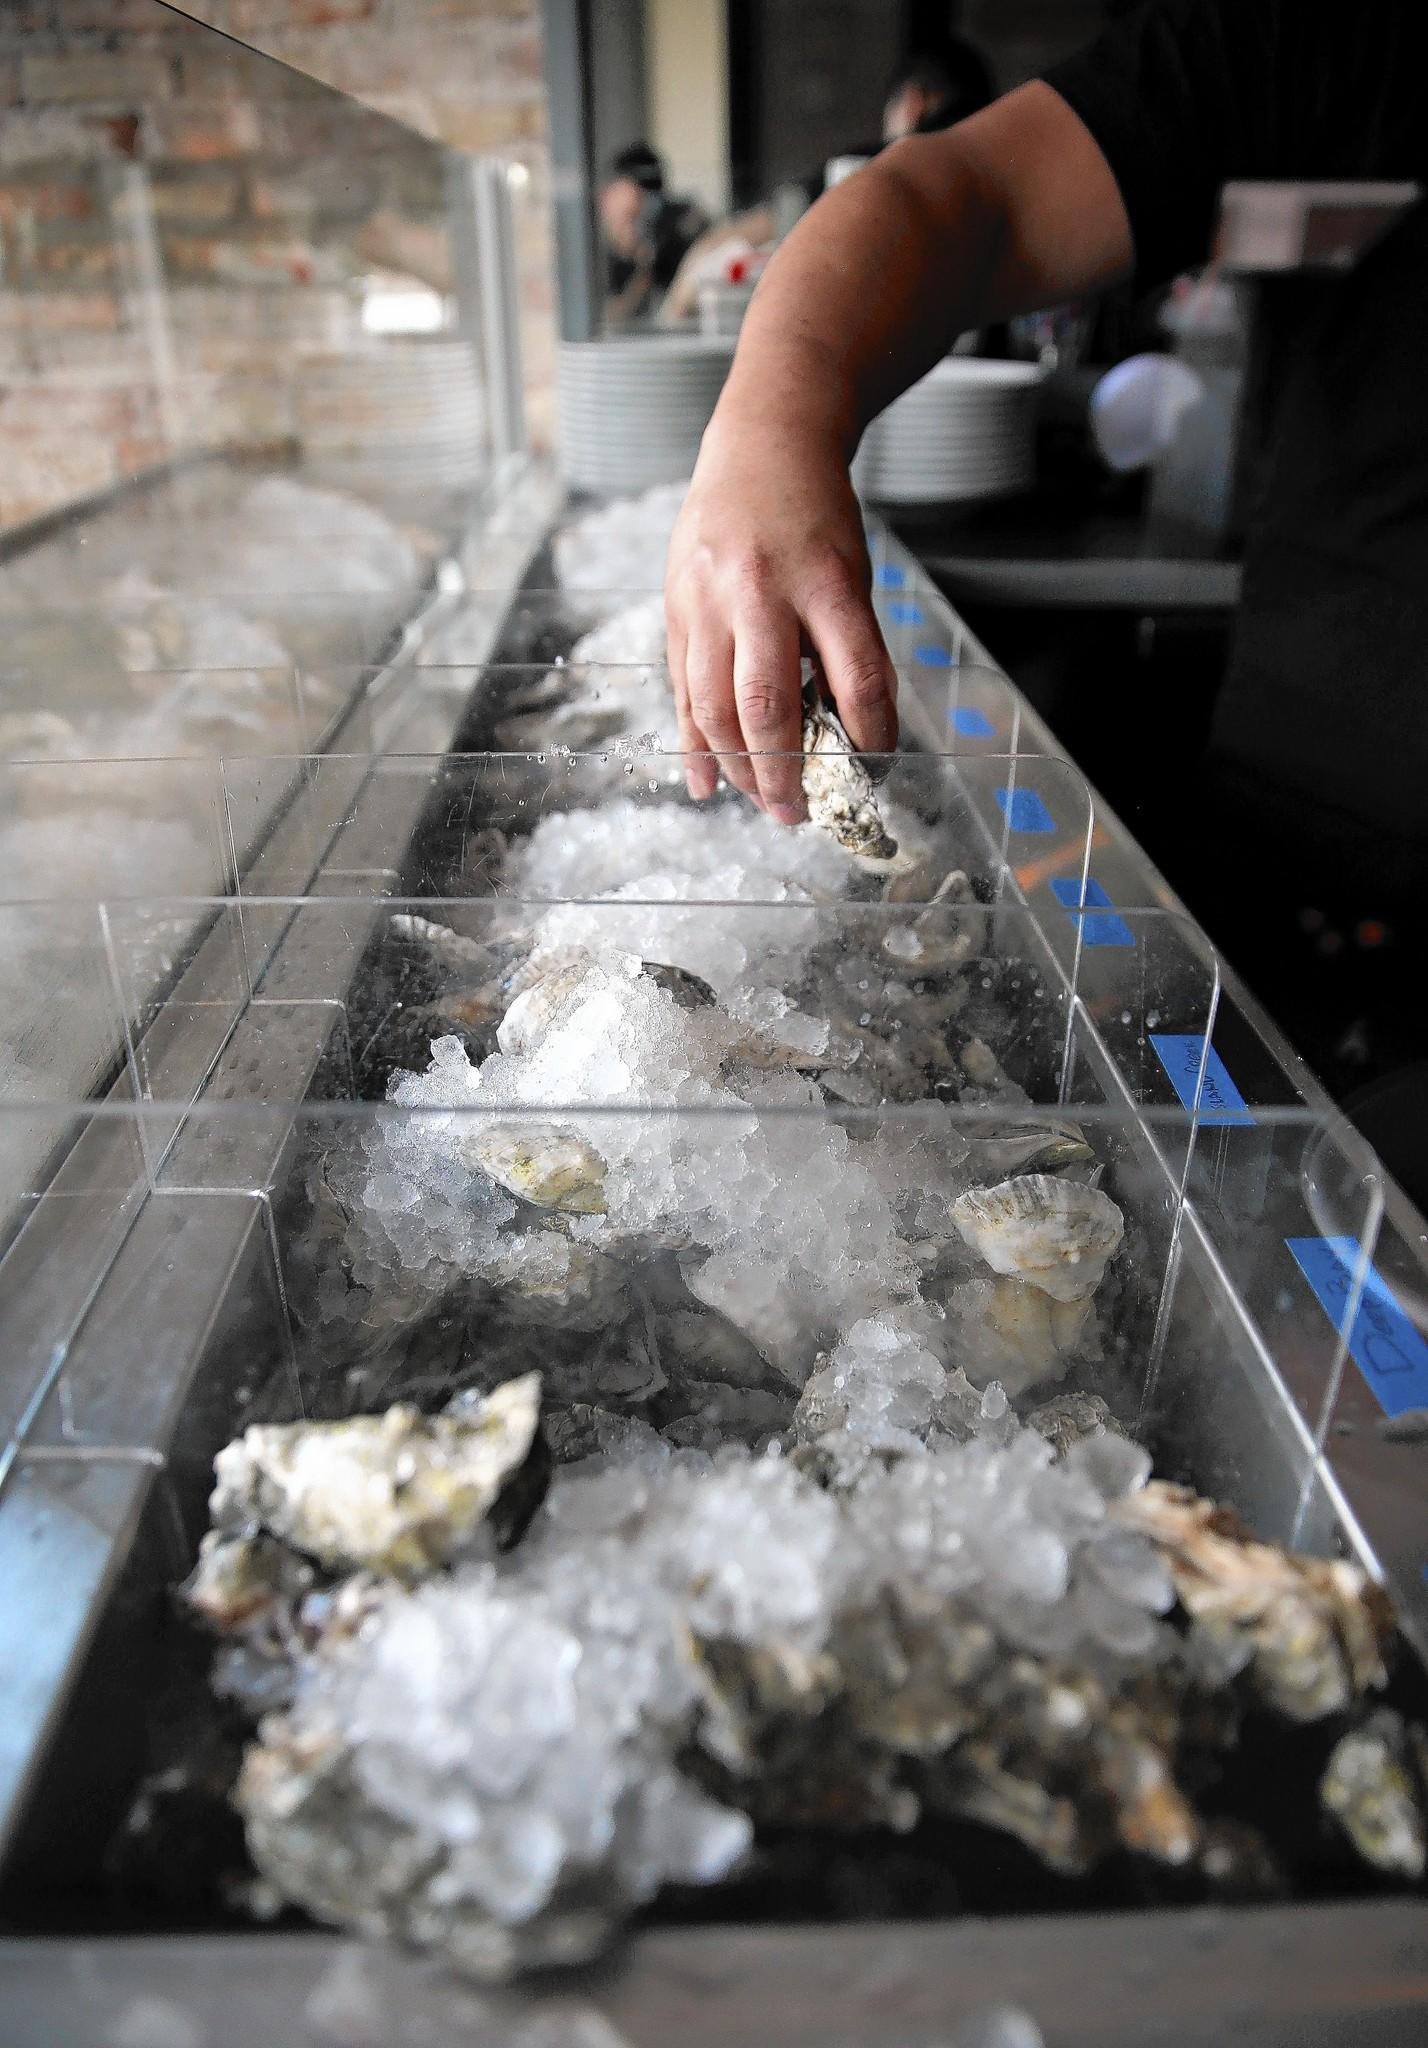 The staff prepares the day's oyster bar at Bow & Stern.